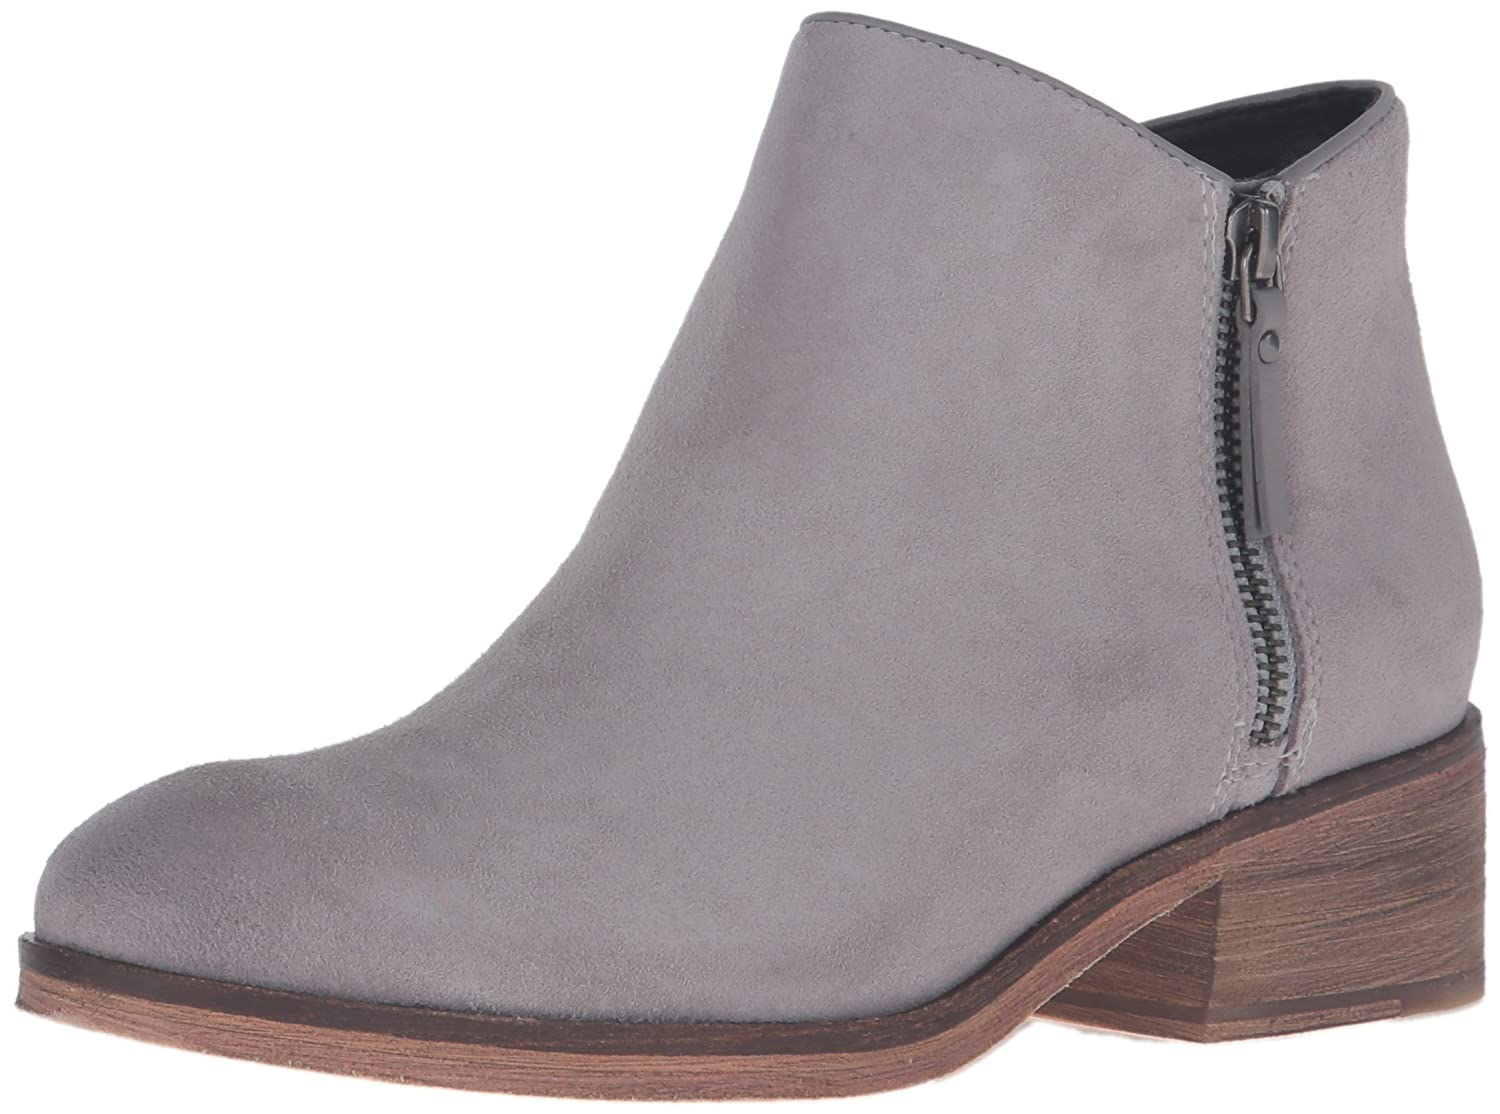 Cole Haan Women's Hayes Flat Ankle Bootie B01FX6Z7LC 8 B(M) US|Ironstone Suede